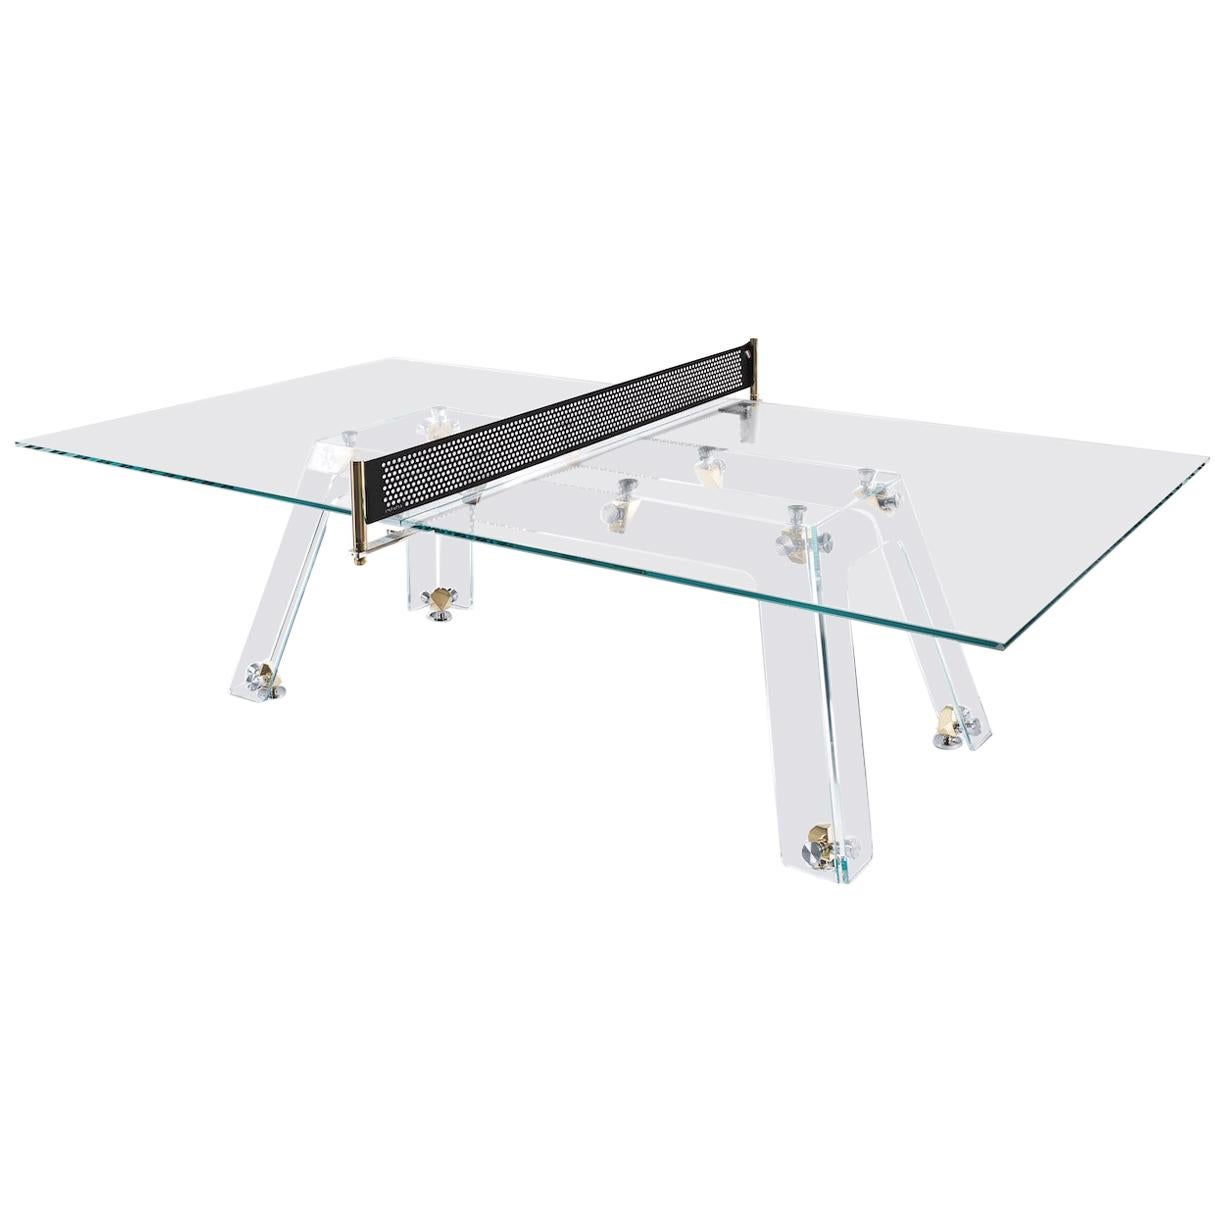 Lungolinea Gold, Contemporary Design Table Tennis/ Ping Pong Table by Impatia